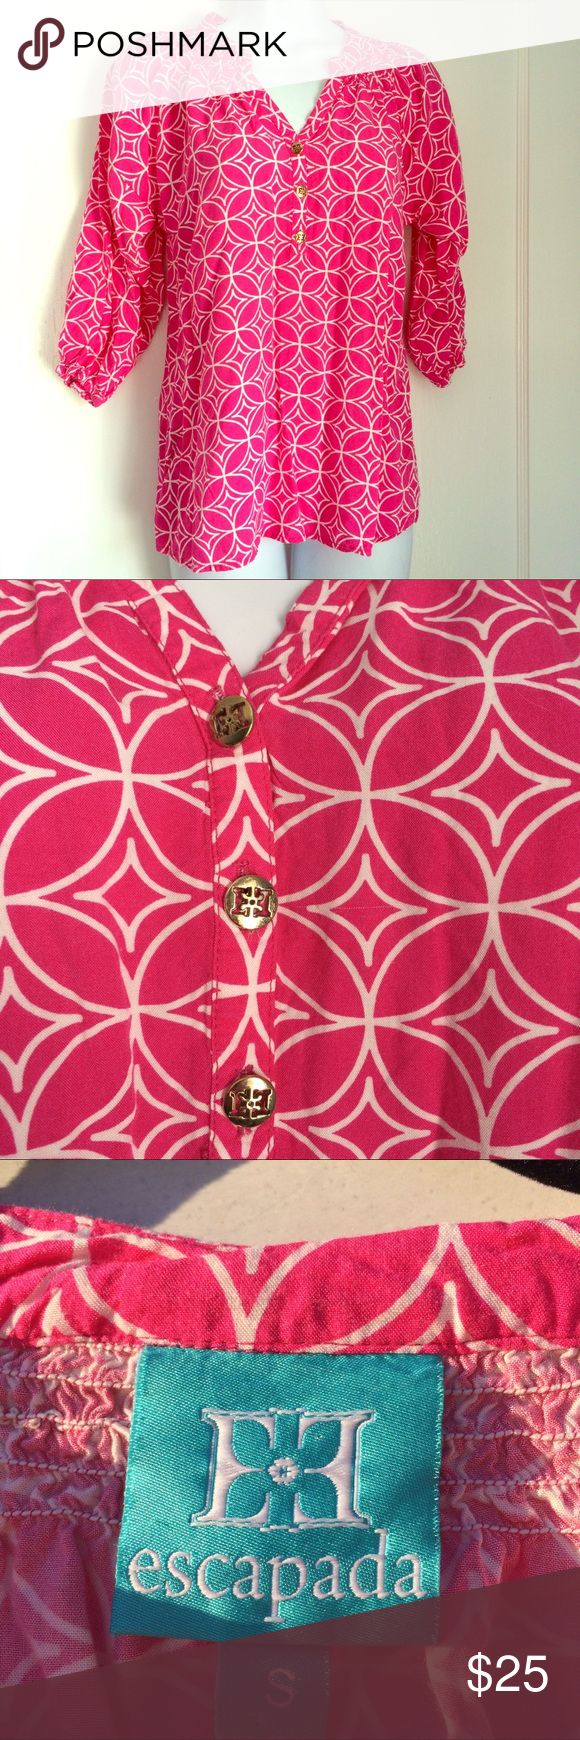 """Escapada small blouse pink geometric Escapada Women's Size Small 3/4 Sleeve Blouse Hot Pink & White Geometric Pattern Gold Button Detail Smocking At Neckline Elastic Cuffs 100% Rayon Armpit to Armpit 19"""", Shoulder to Hem 25"""", Sleeves 16"""" Excellent Condition escapada Tops Blouses"""